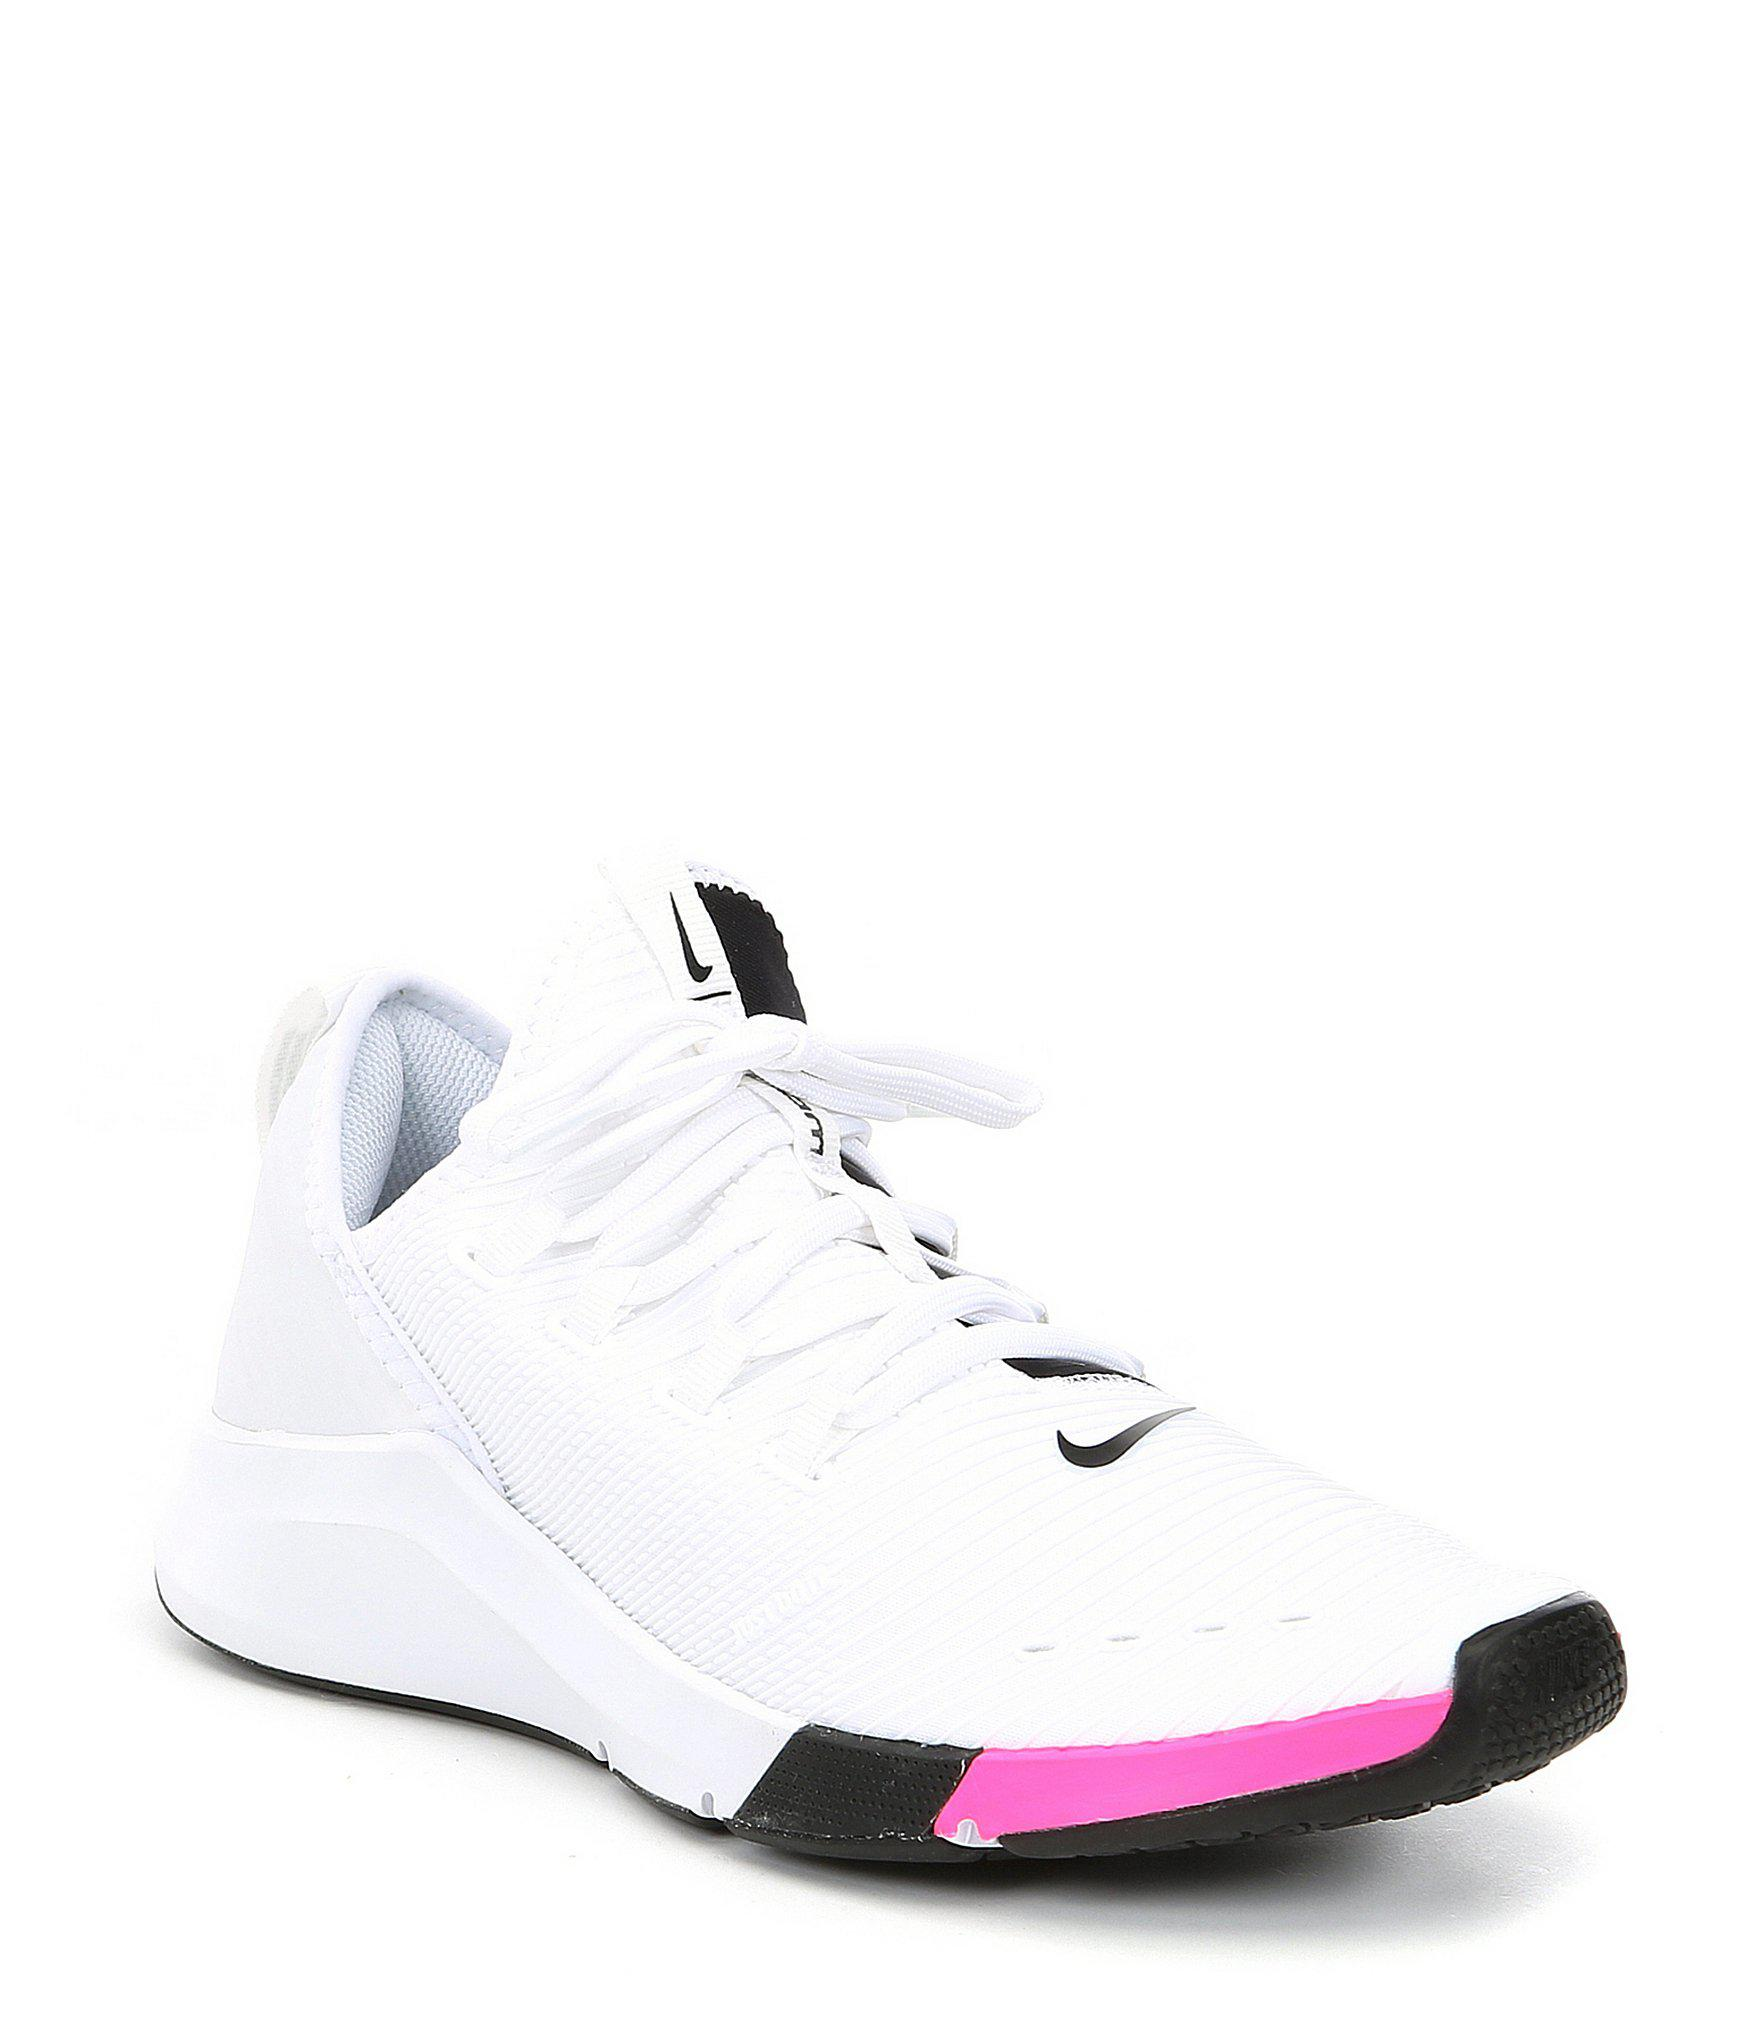 competitive price 36b95 9b716 Femme Nike pour Air d entraînement Fitness 2 Chaussure blanc Zoom Lyst  14Fw8gxHqp